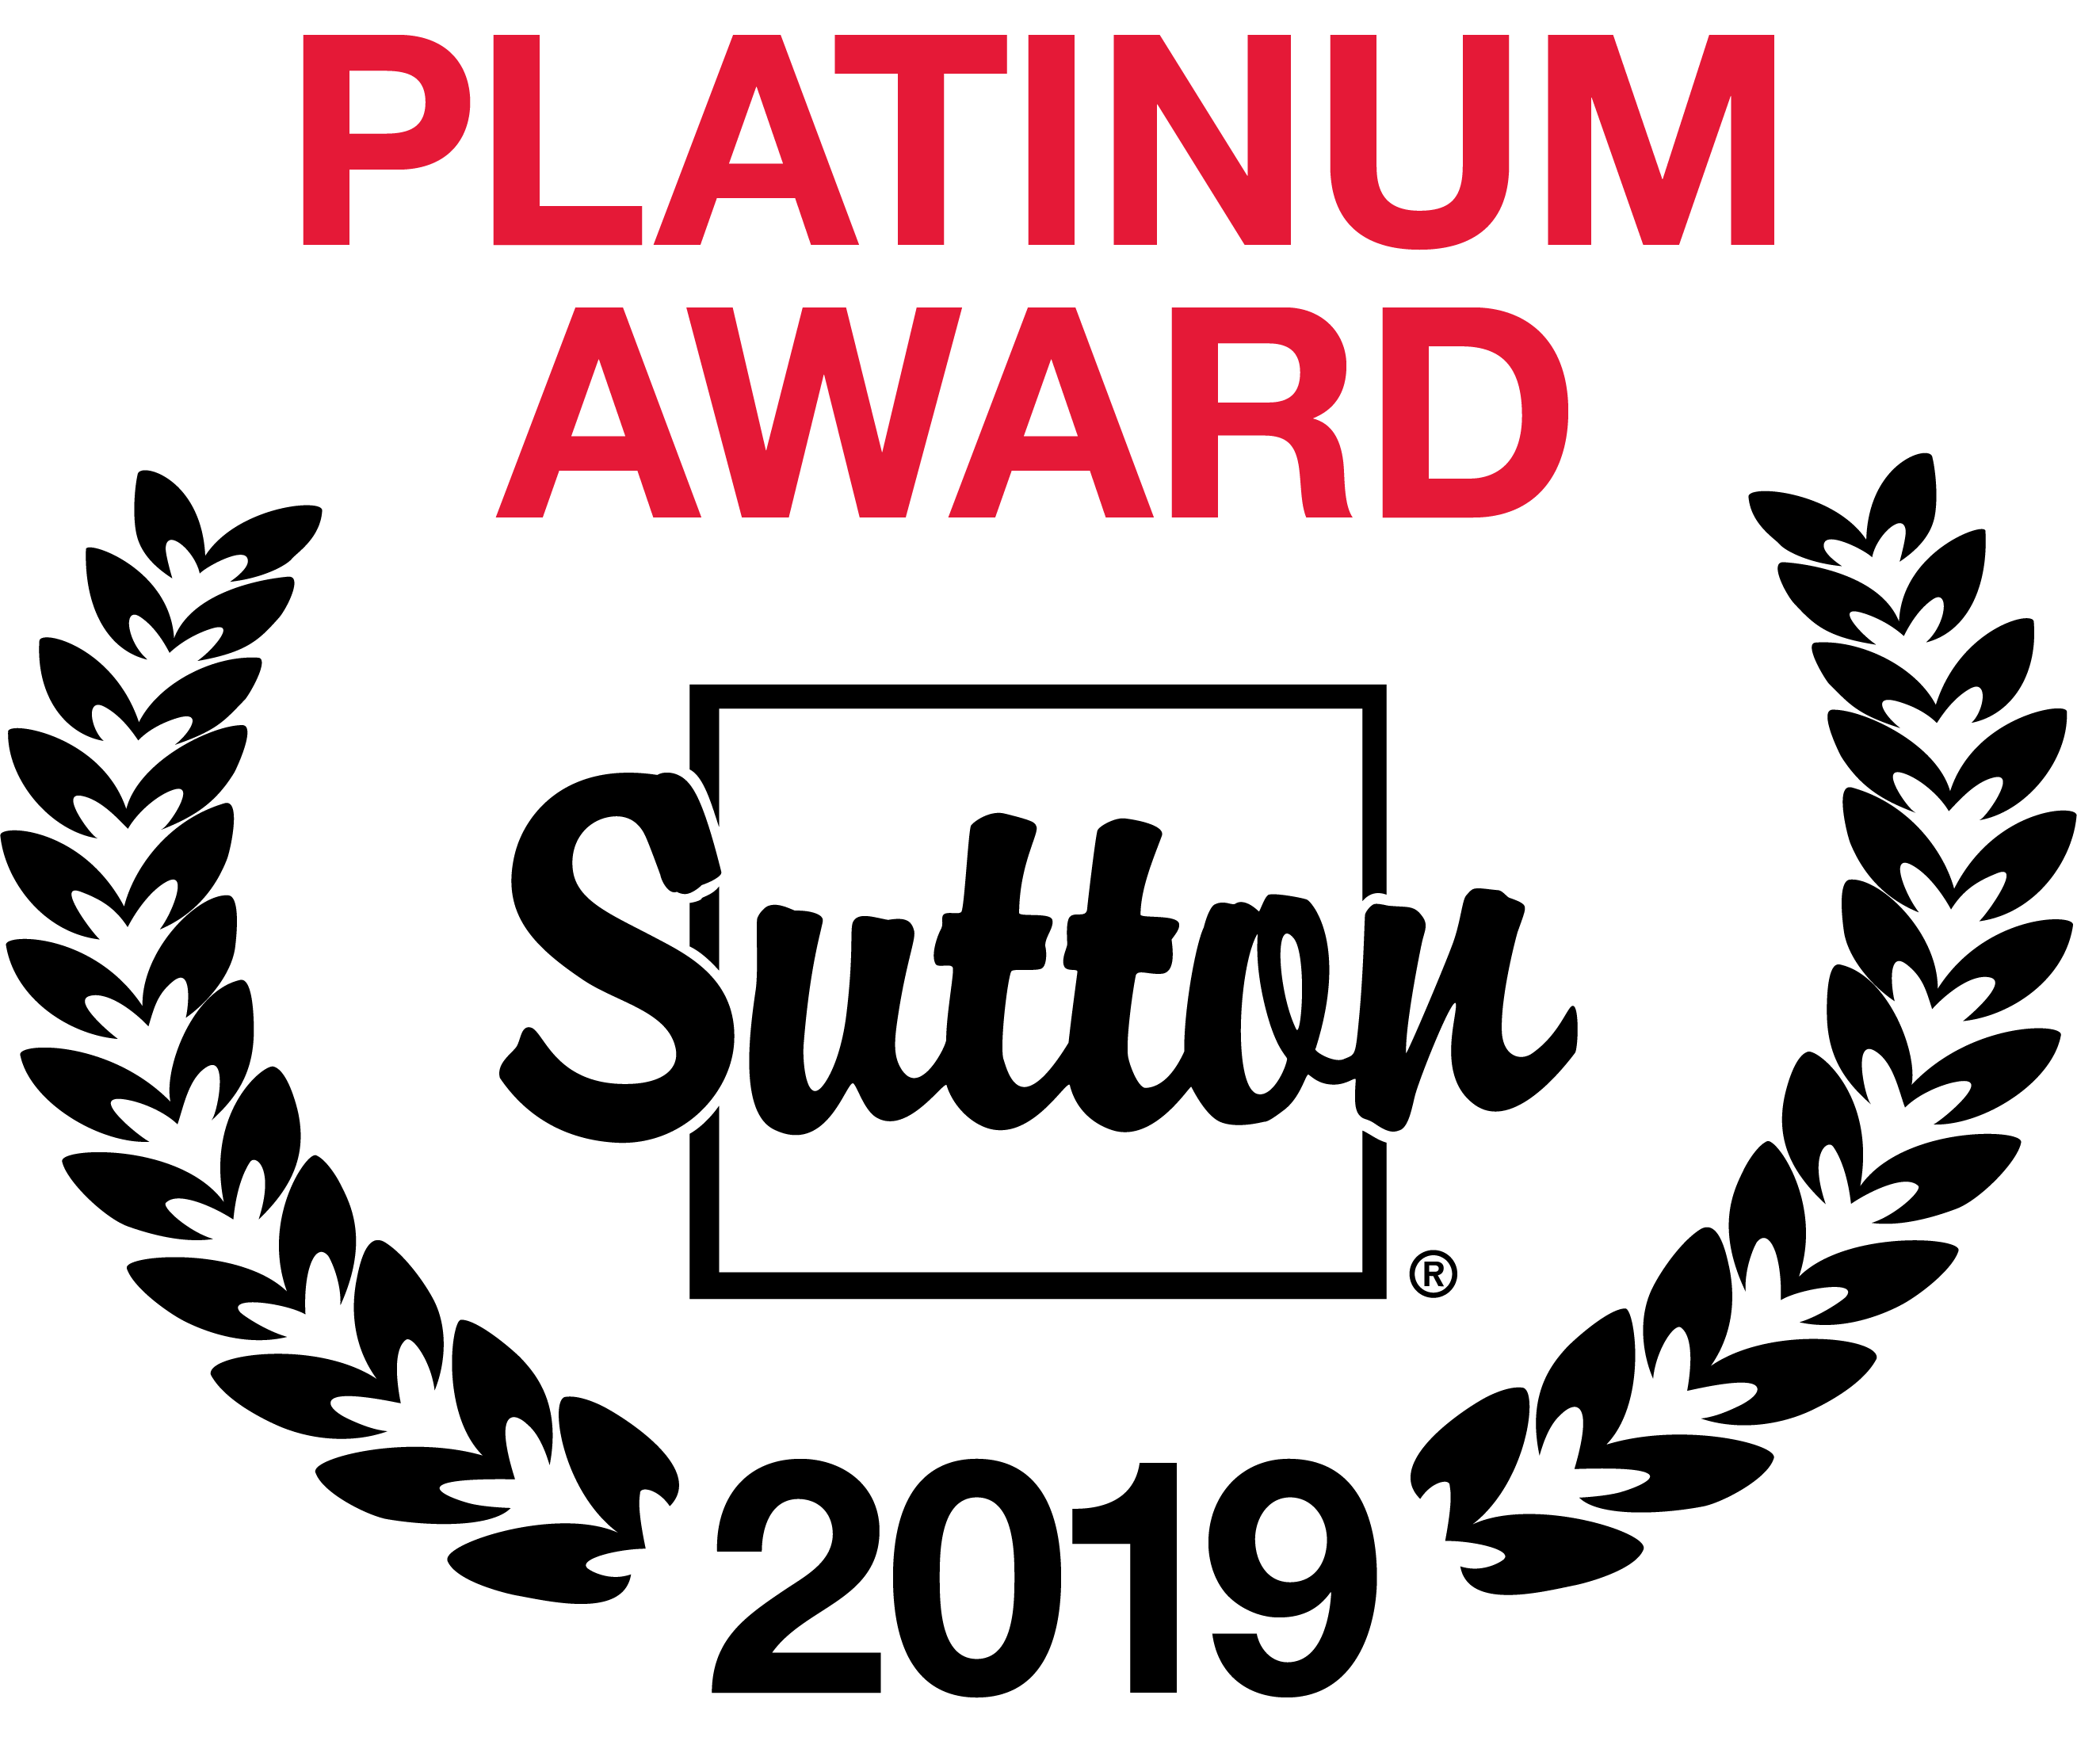 platinum_award_-_2019